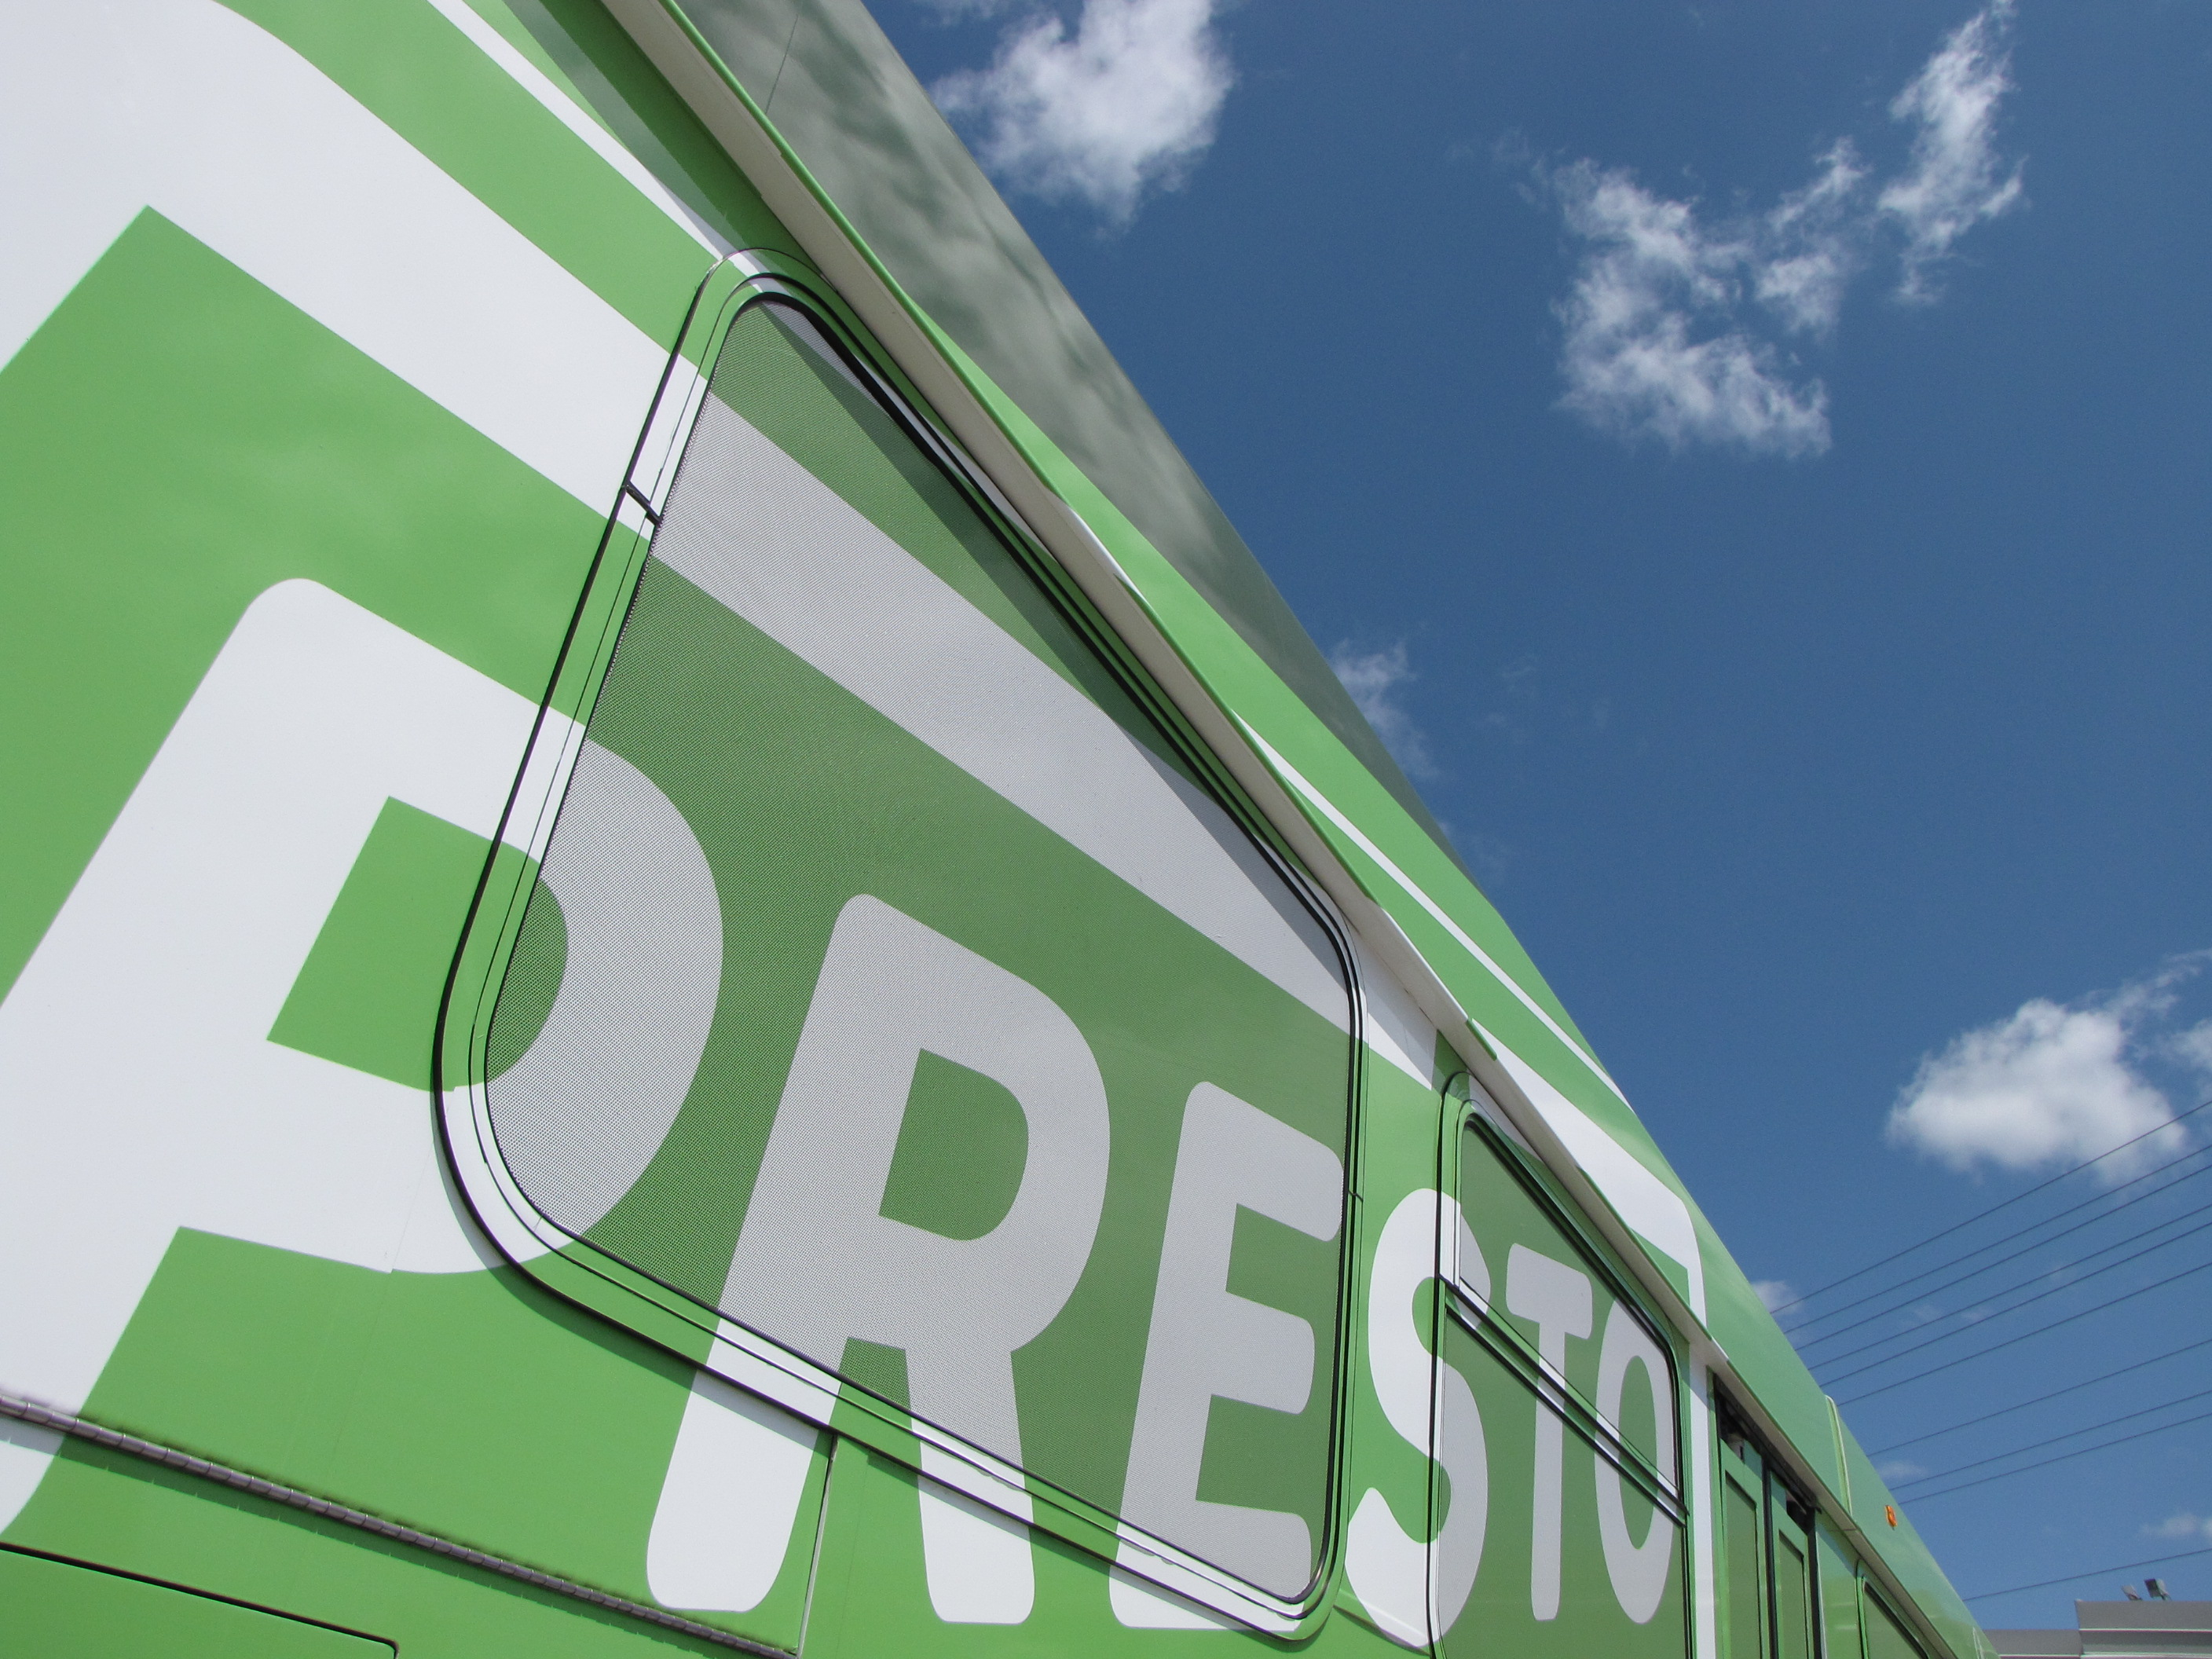 Presto logo on the side of a bus, date unknown. <br> Image from MTO's collection.